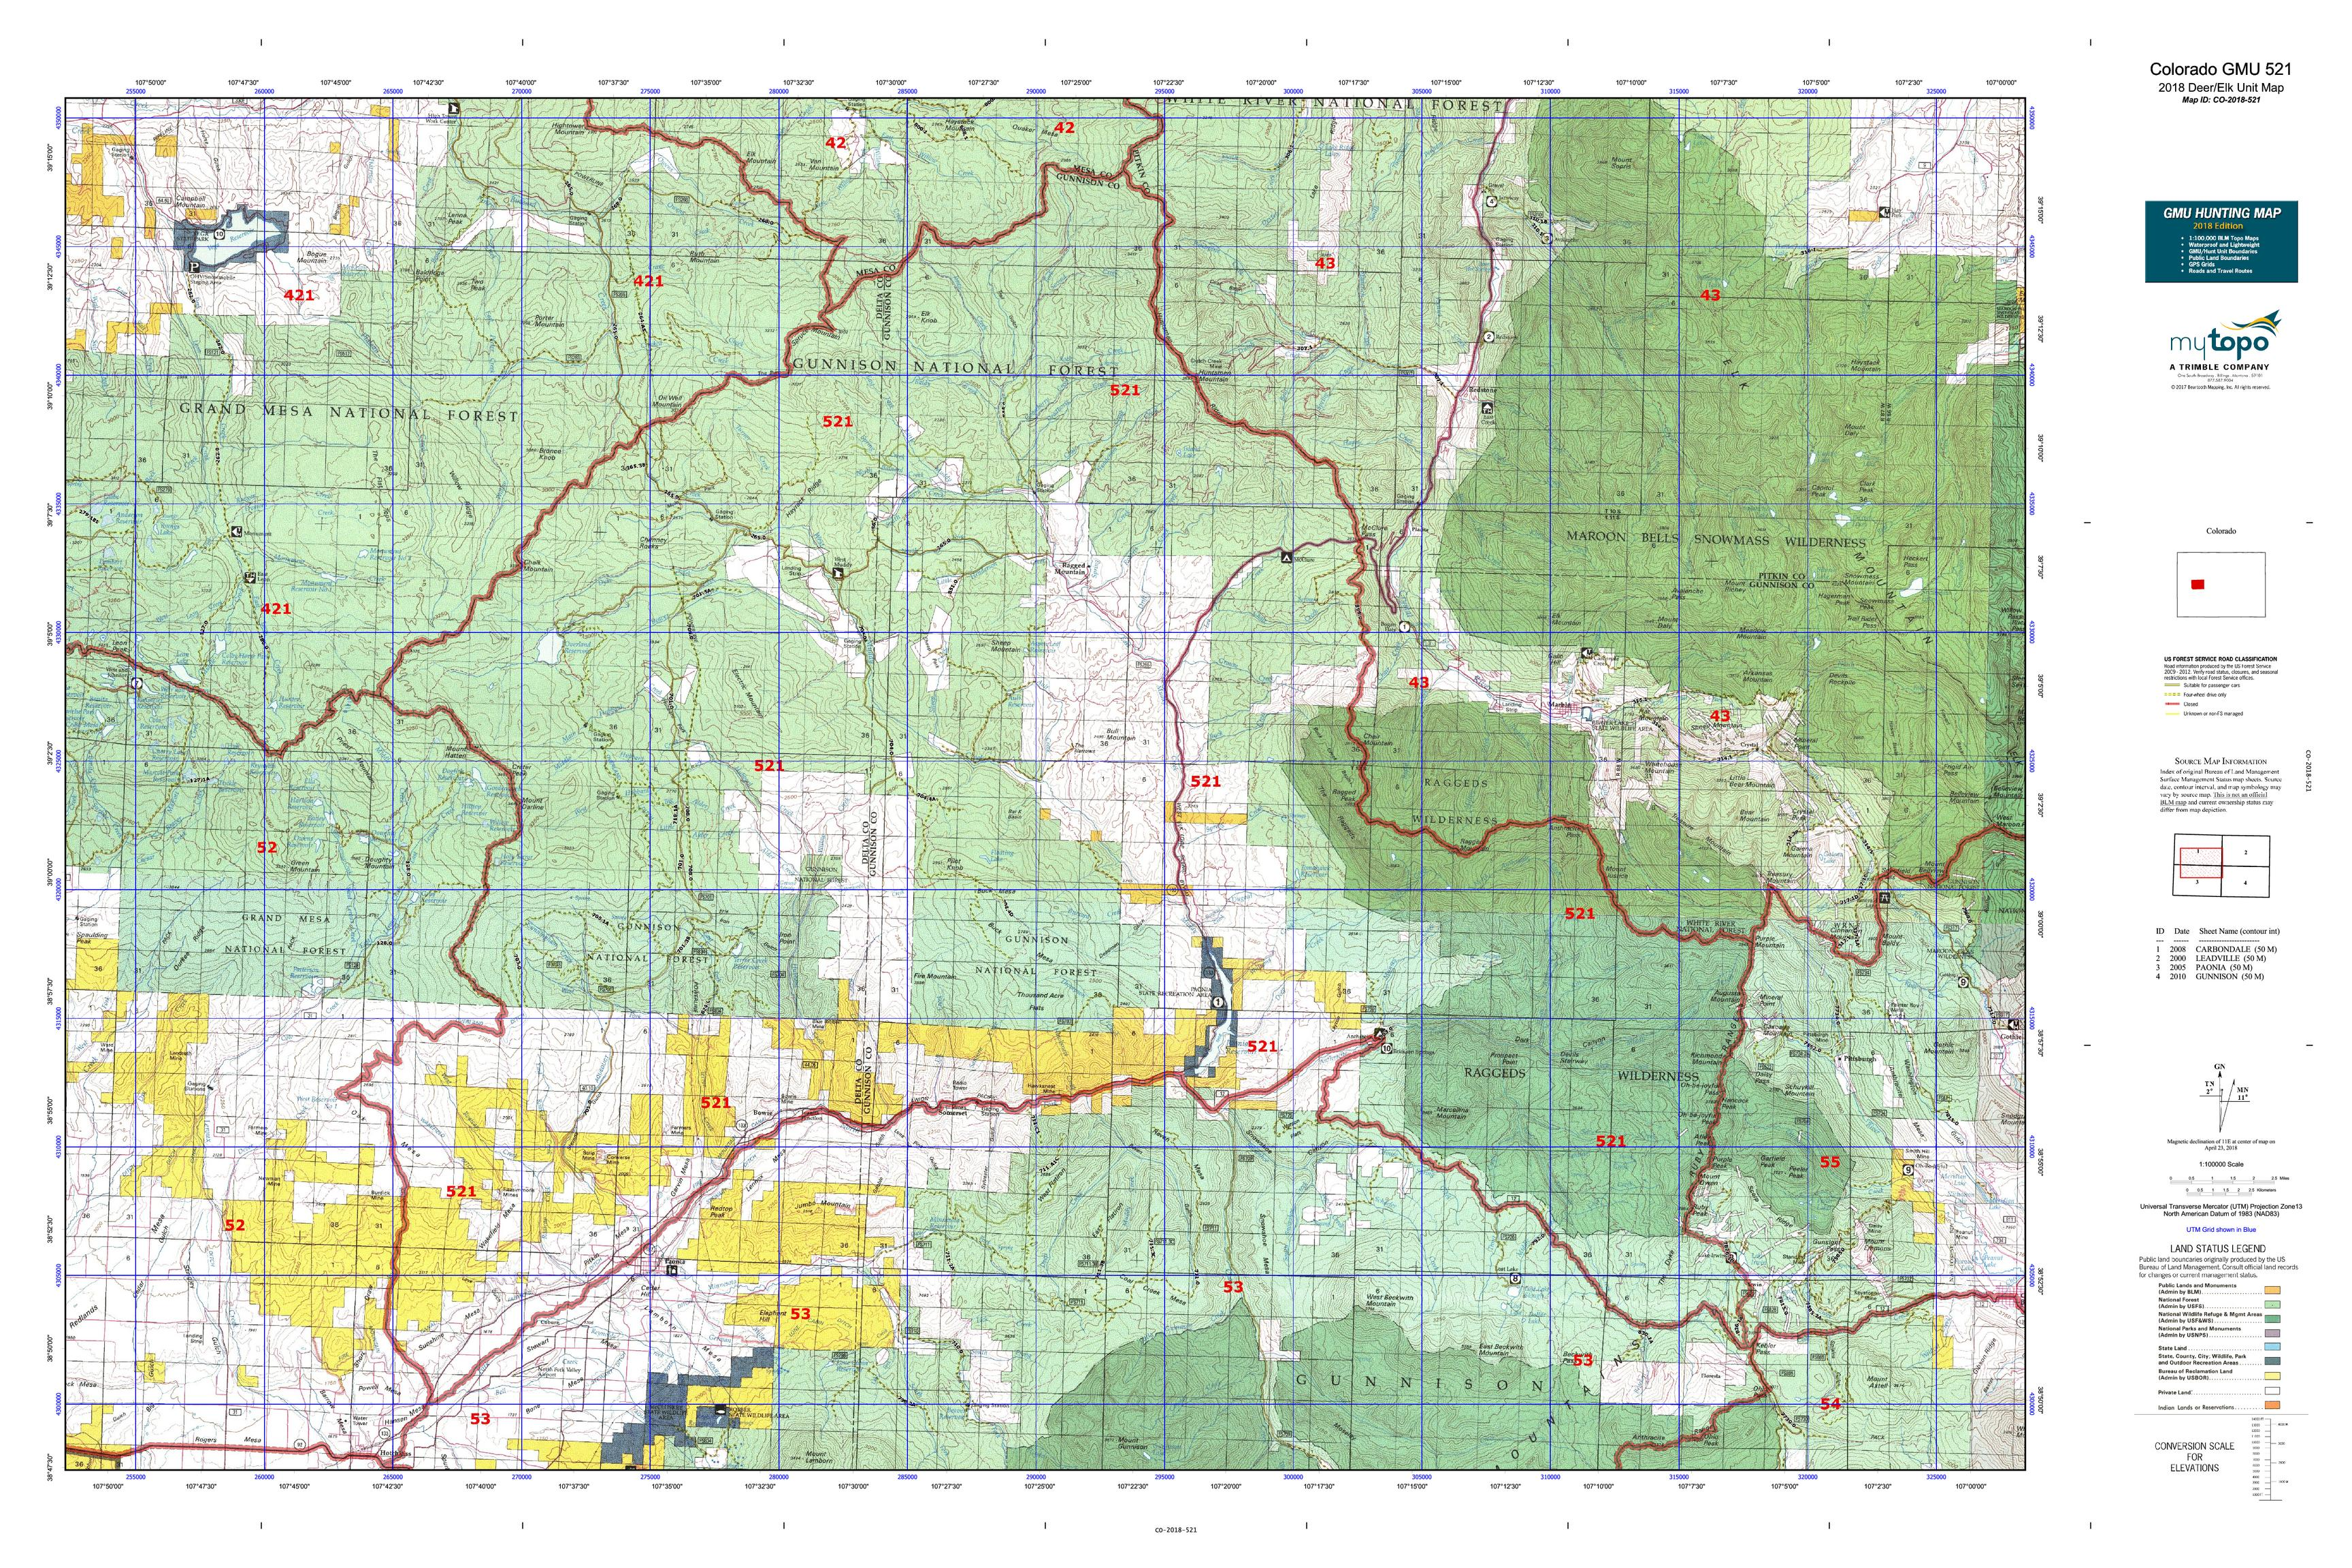 Colorado Elk Hunting Unit Map Colorado GMU 521 Map | MyTopo